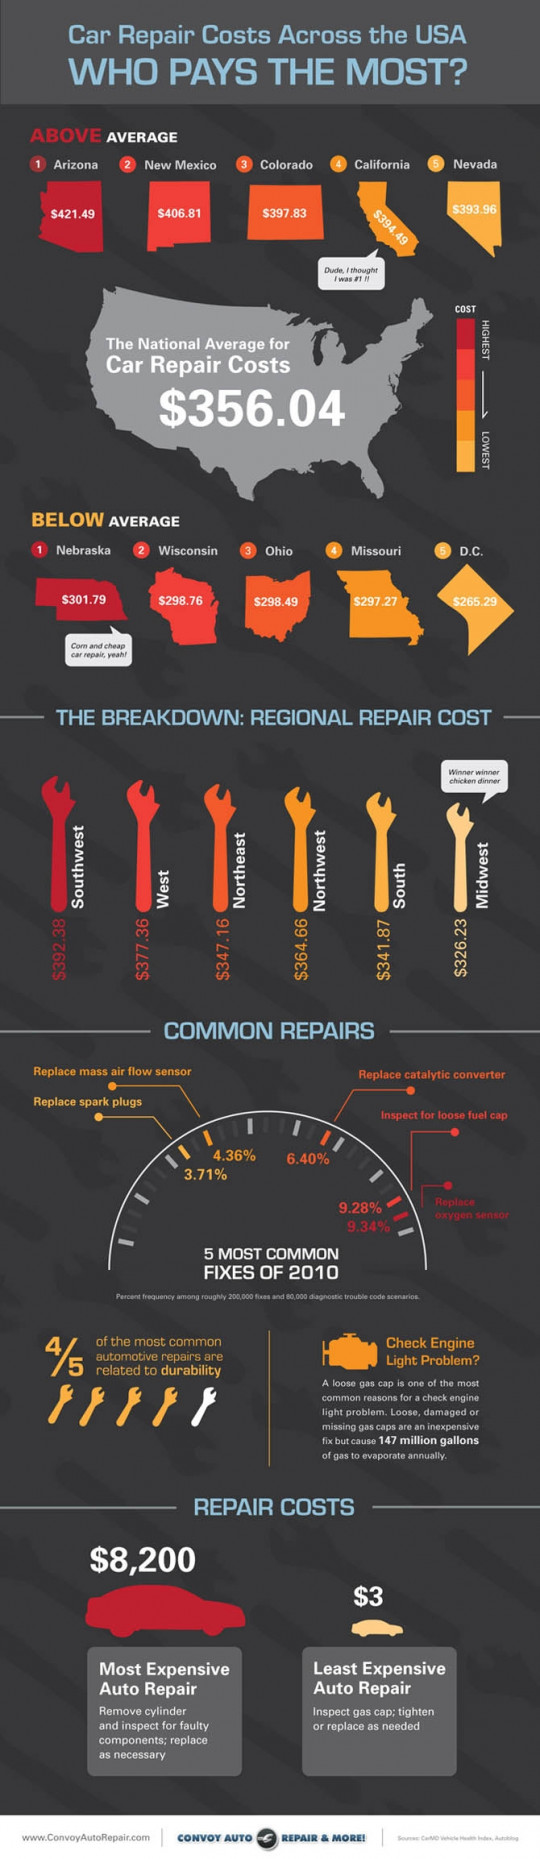 Car Repair Costs in the U.S. - What Are You Likely to Pay?